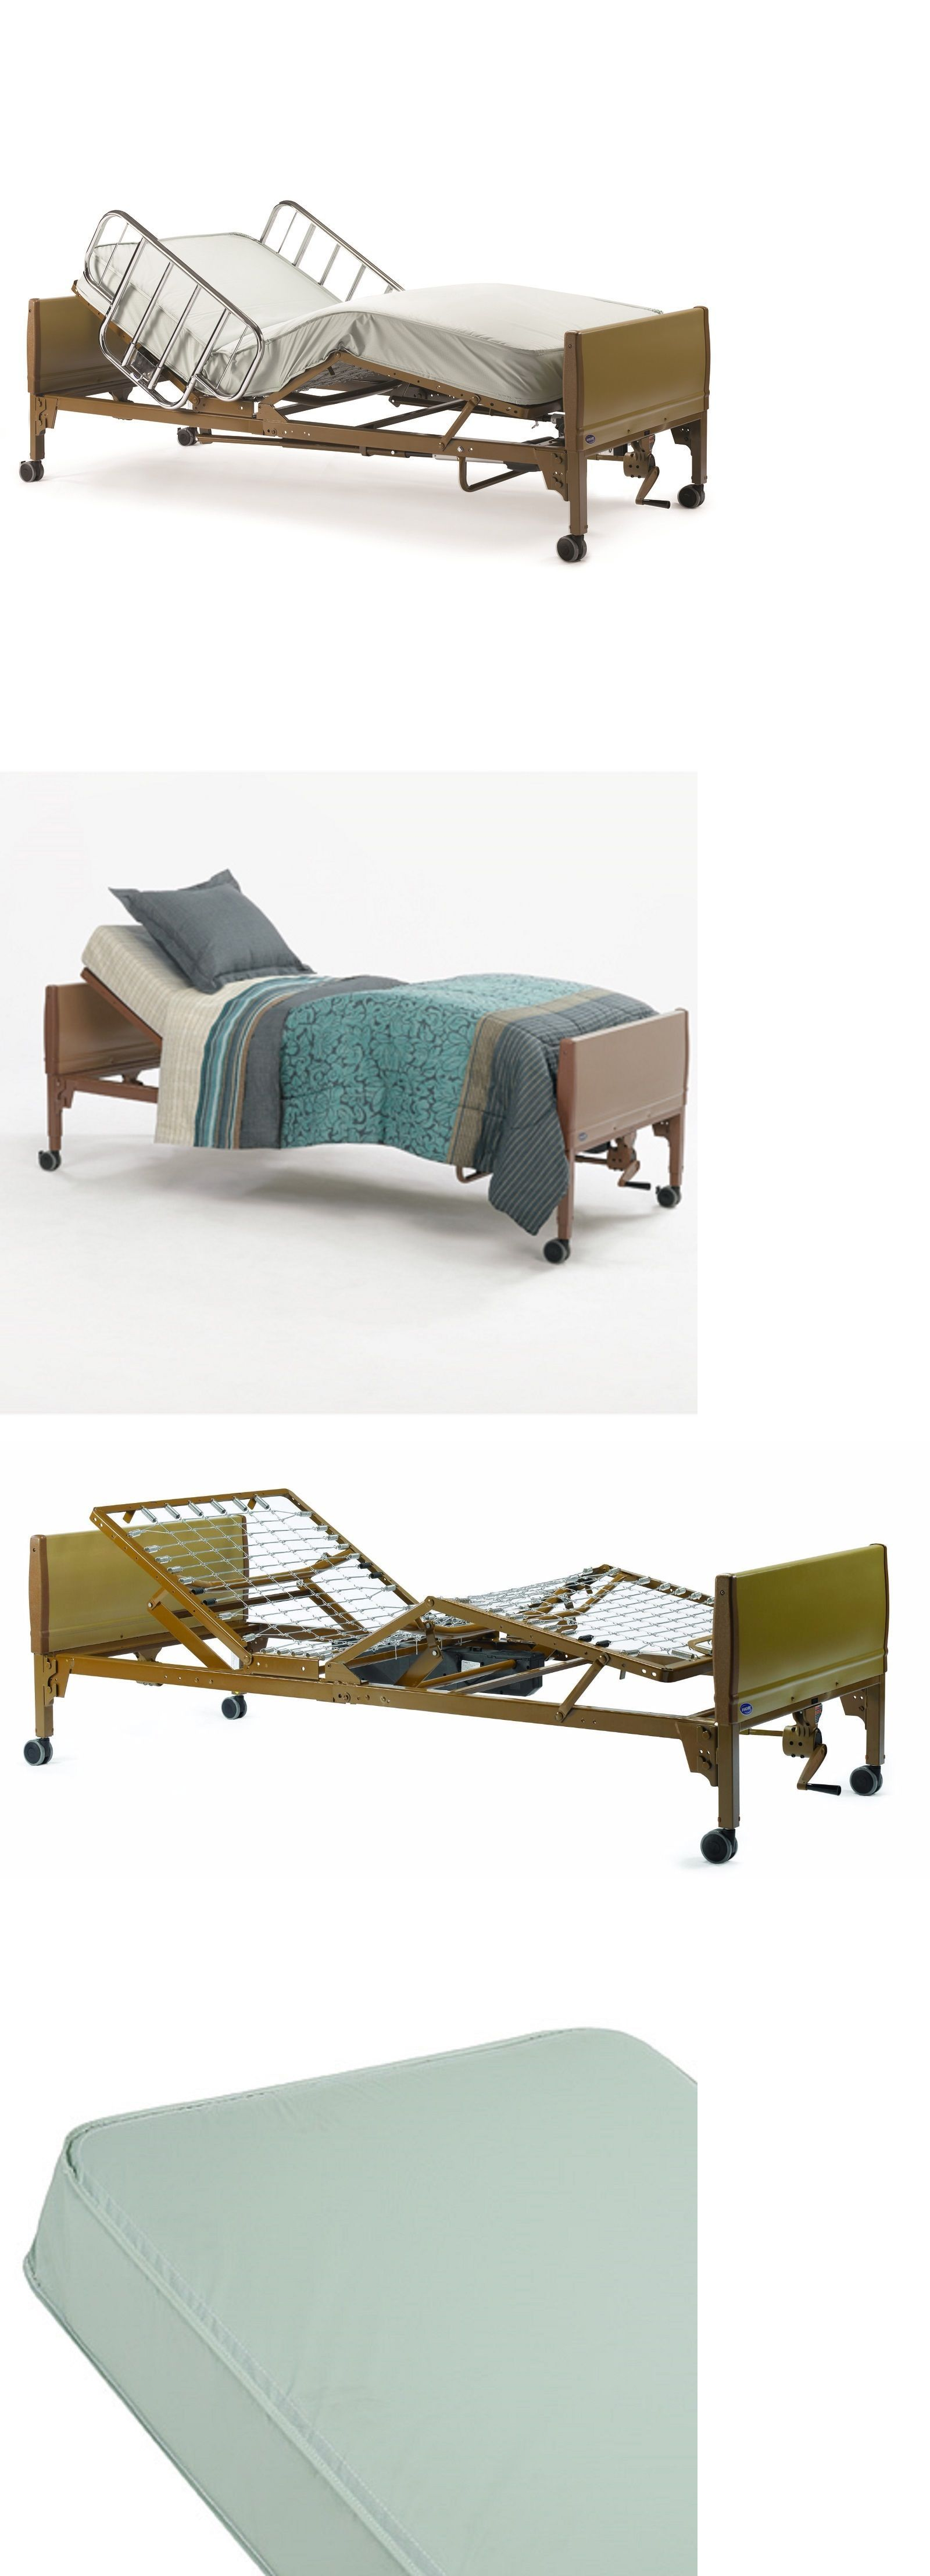 other mobility and disability hospital bed by invacare semi